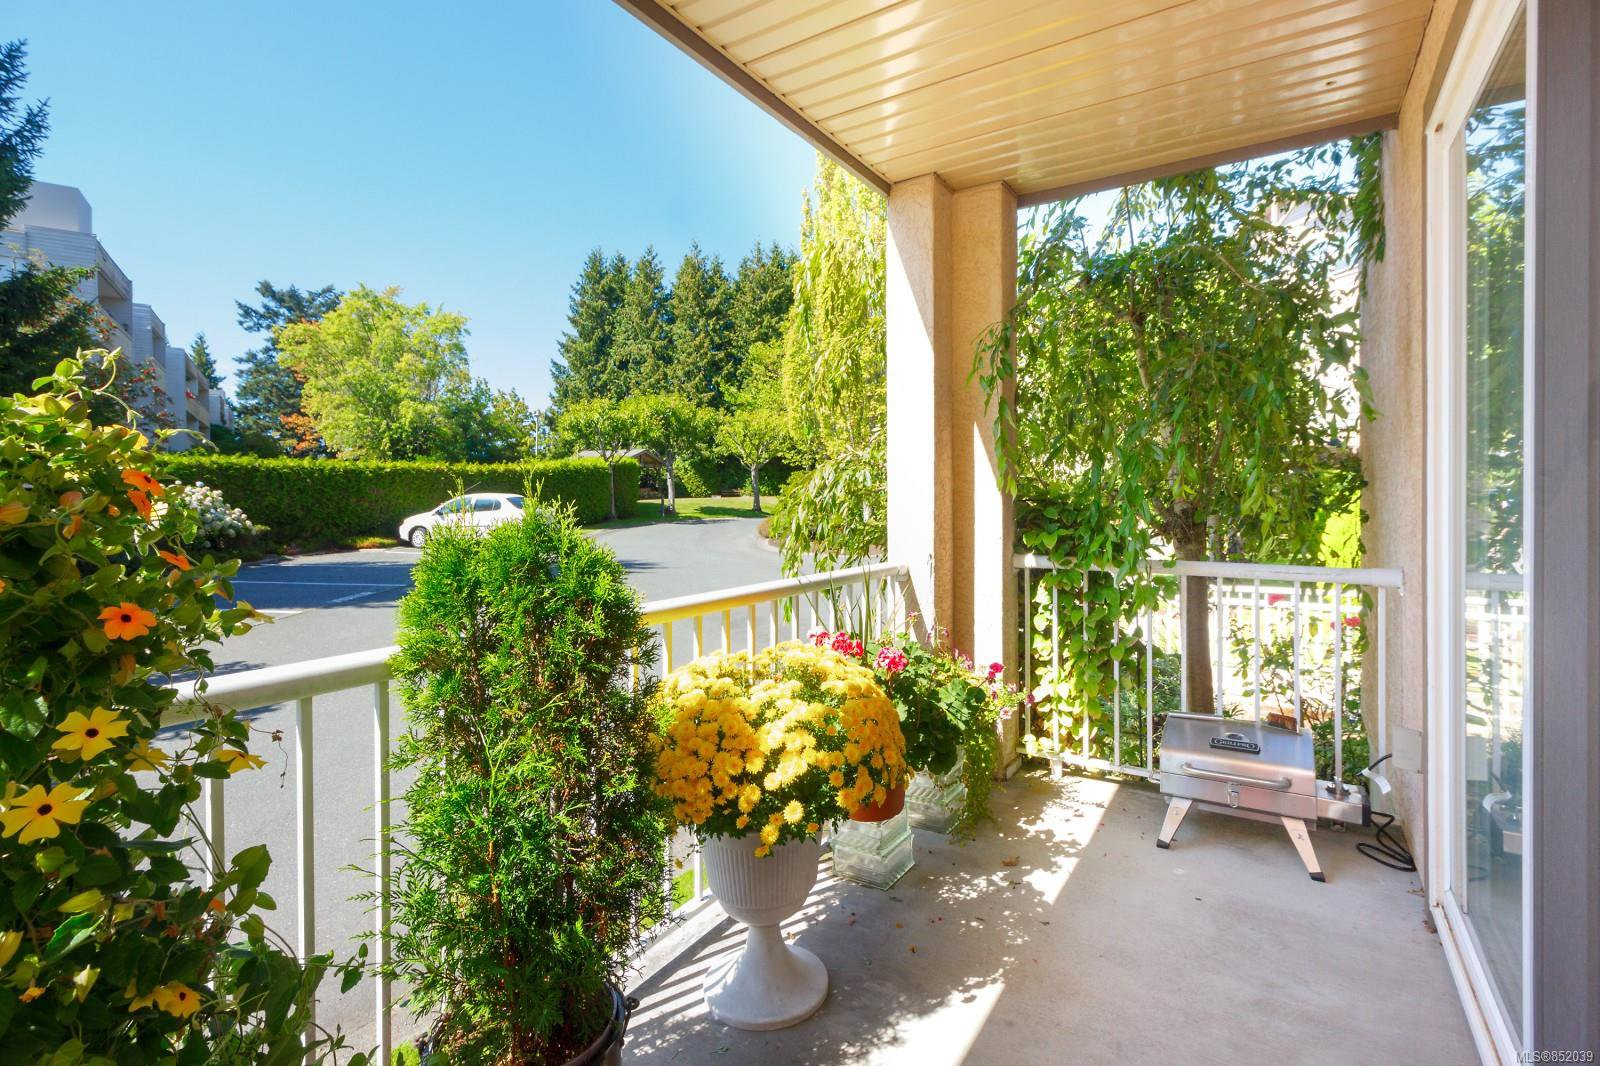 Photo 20: Photos: 109 1240 Verdier Ave in : CS Brentwood Bay Condo for sale (Central Saanich)  : MLS®# 852039